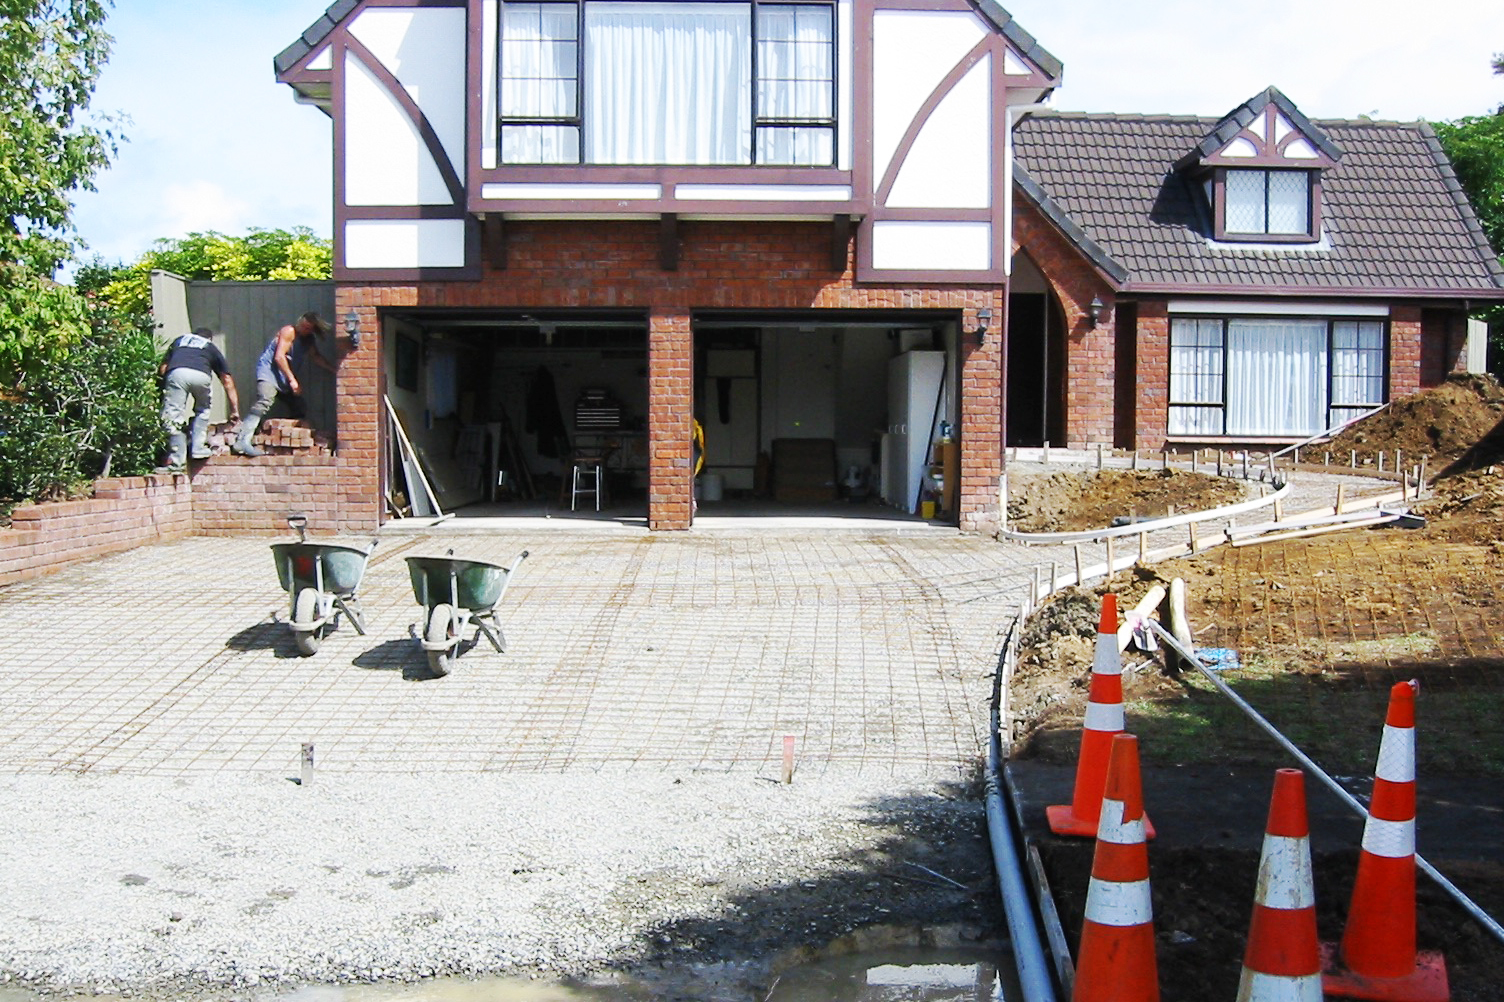 Preparation for laying new driveway